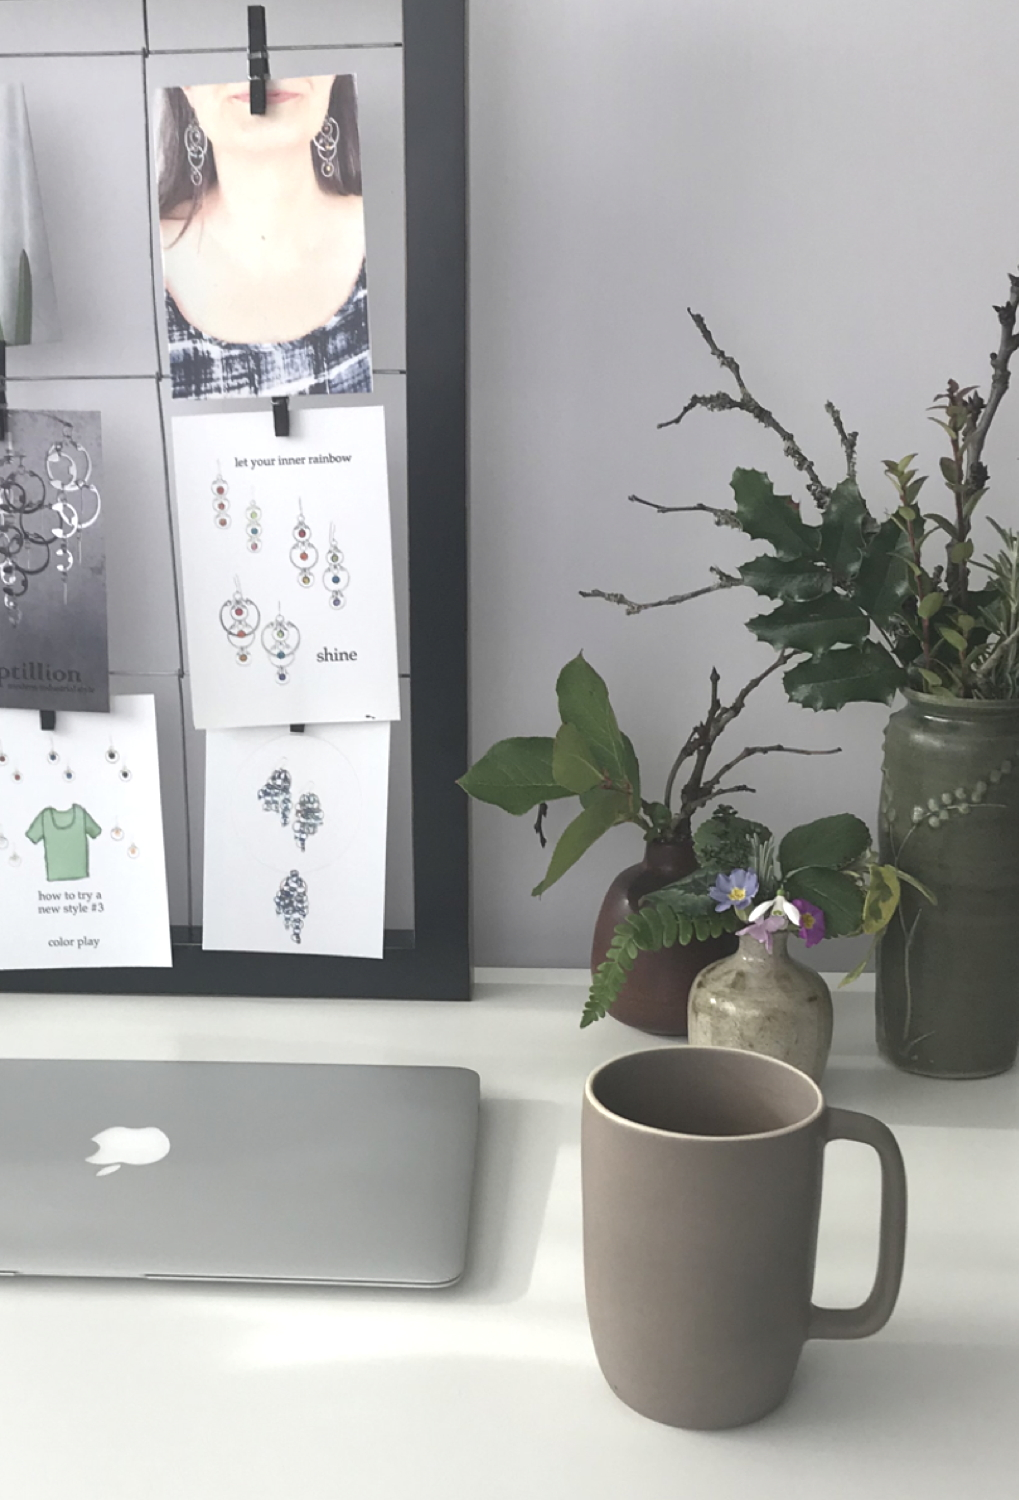 A glimpse into Wraptillion's studio workspace: laptop, mug, three small everyday winter flower arrangements, and the corner of a moodboard.